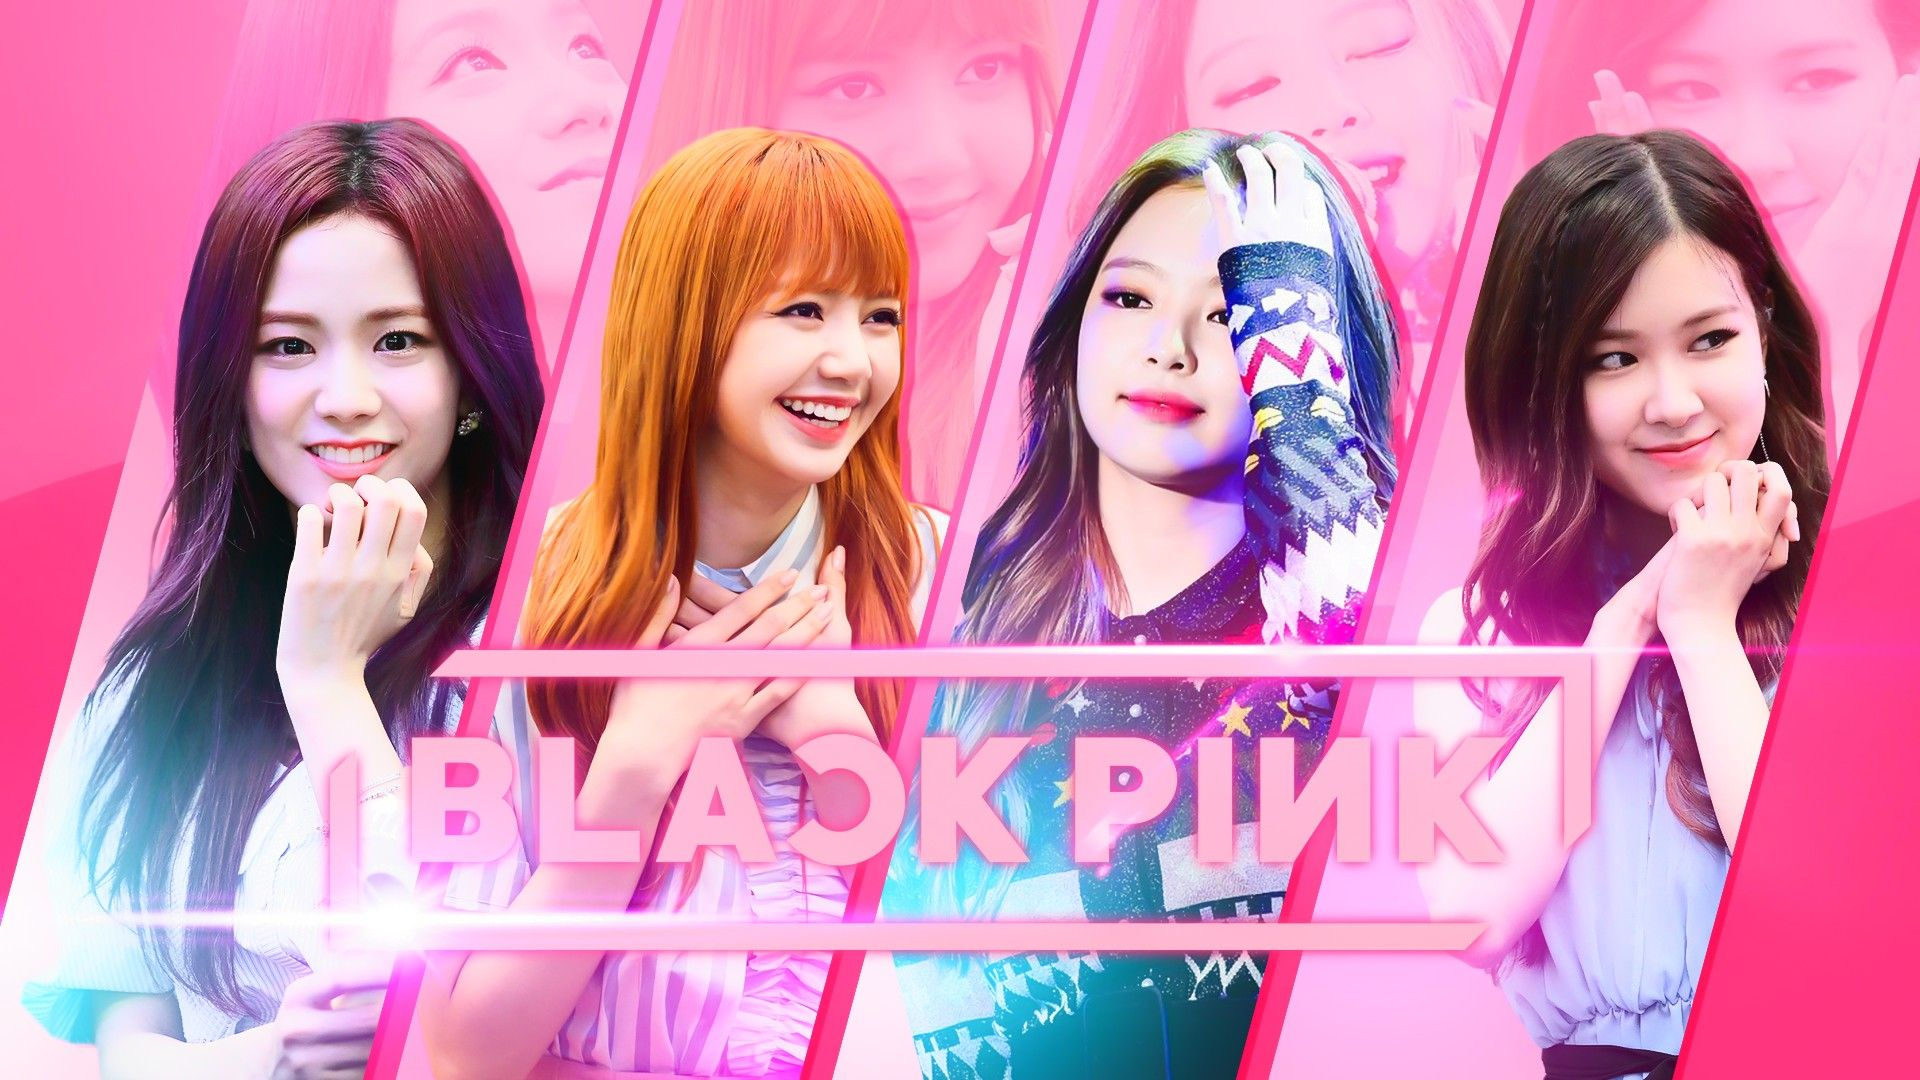 Desktop Wallpaper Blackpink Best Wallpaper Hd Lisa Blackpink Wallpaper Uhd Wallpaper Wallpaper Pc